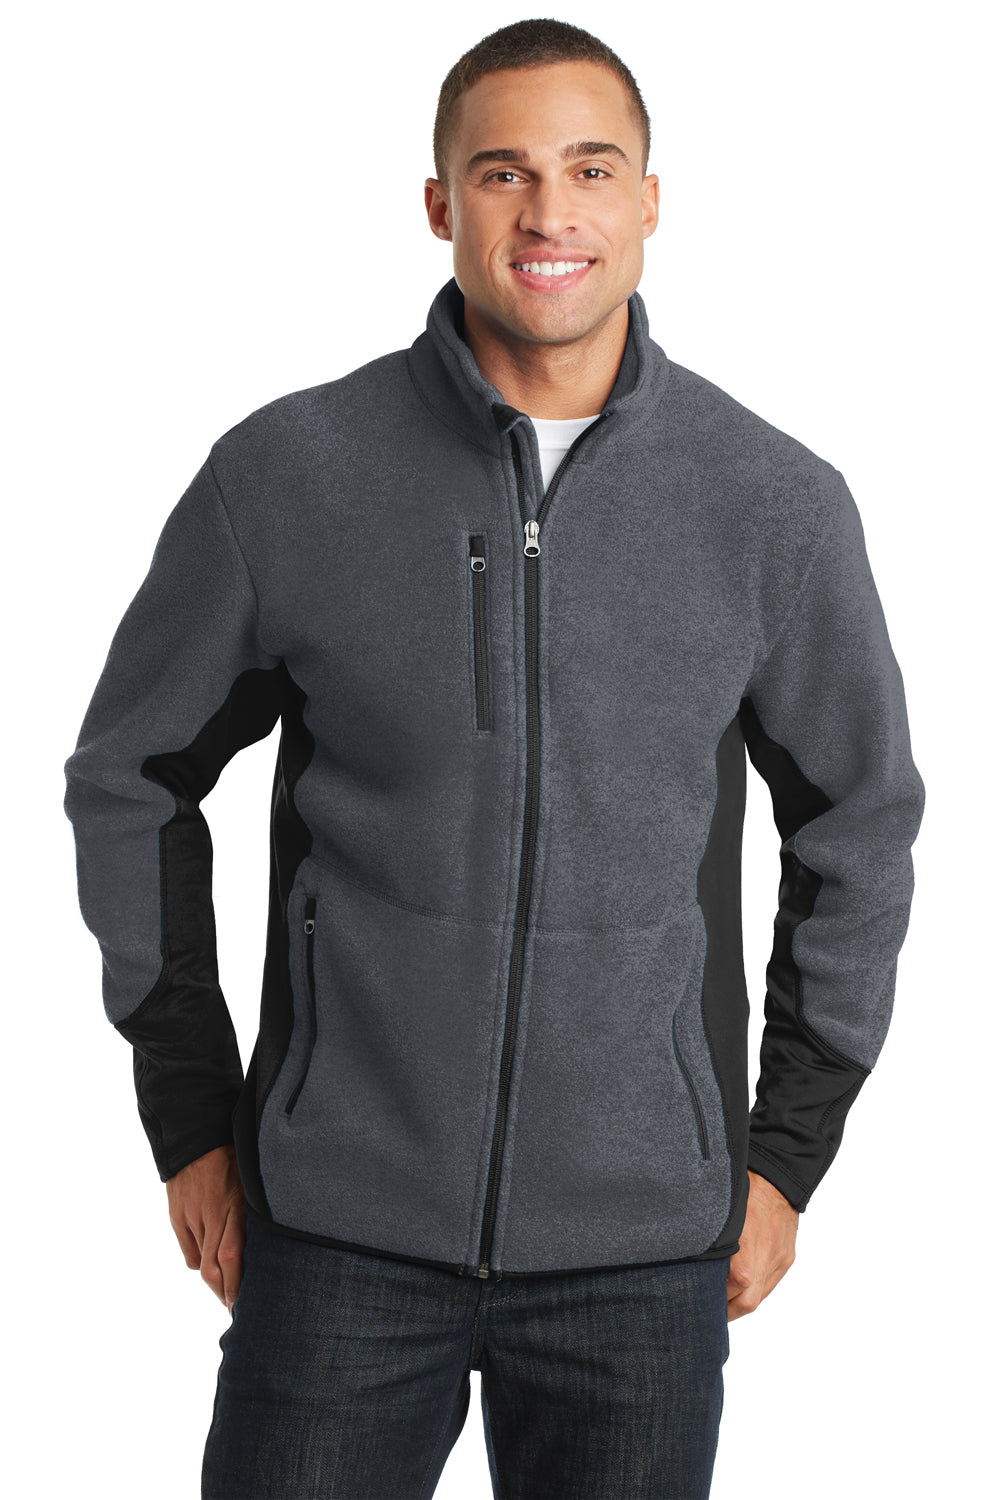 Port Authority F227 Mens R-Tek Pro Full Zip Fleece Jacket Heather Charcoal Grey/Black Front